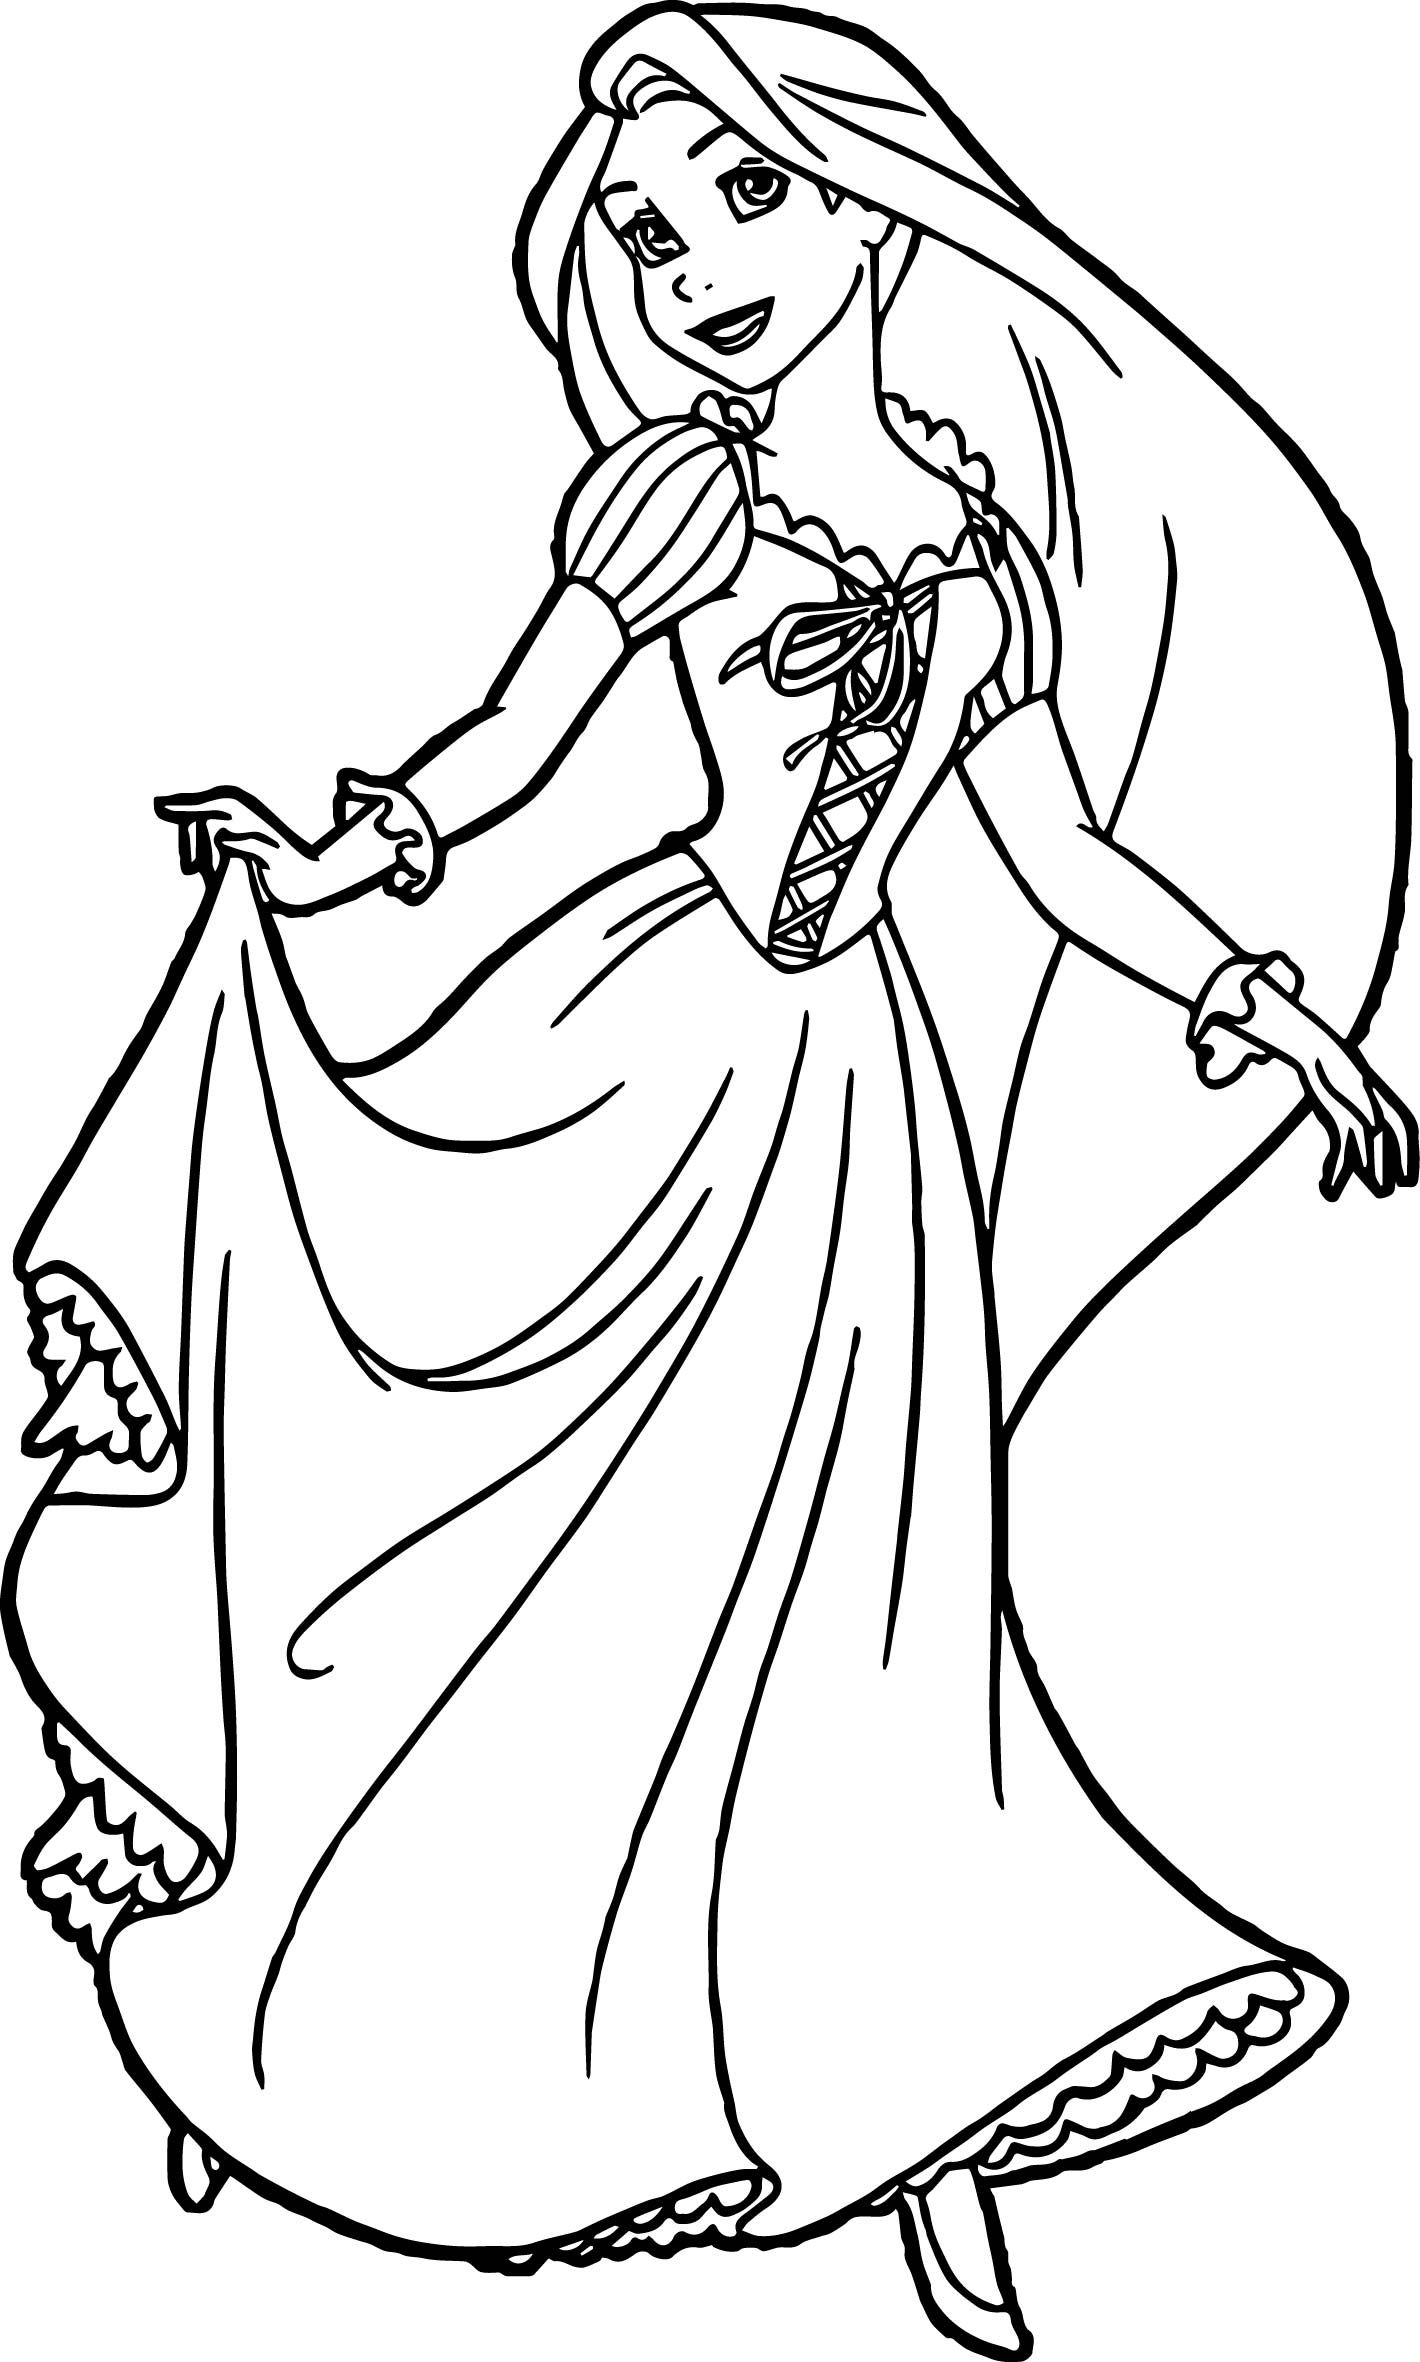 Nice Rapunzel And Flynn Ready Coloring Page Disney Princess Coloring Pages Tangled Coloring Pages Rapunzel Coloring Pages